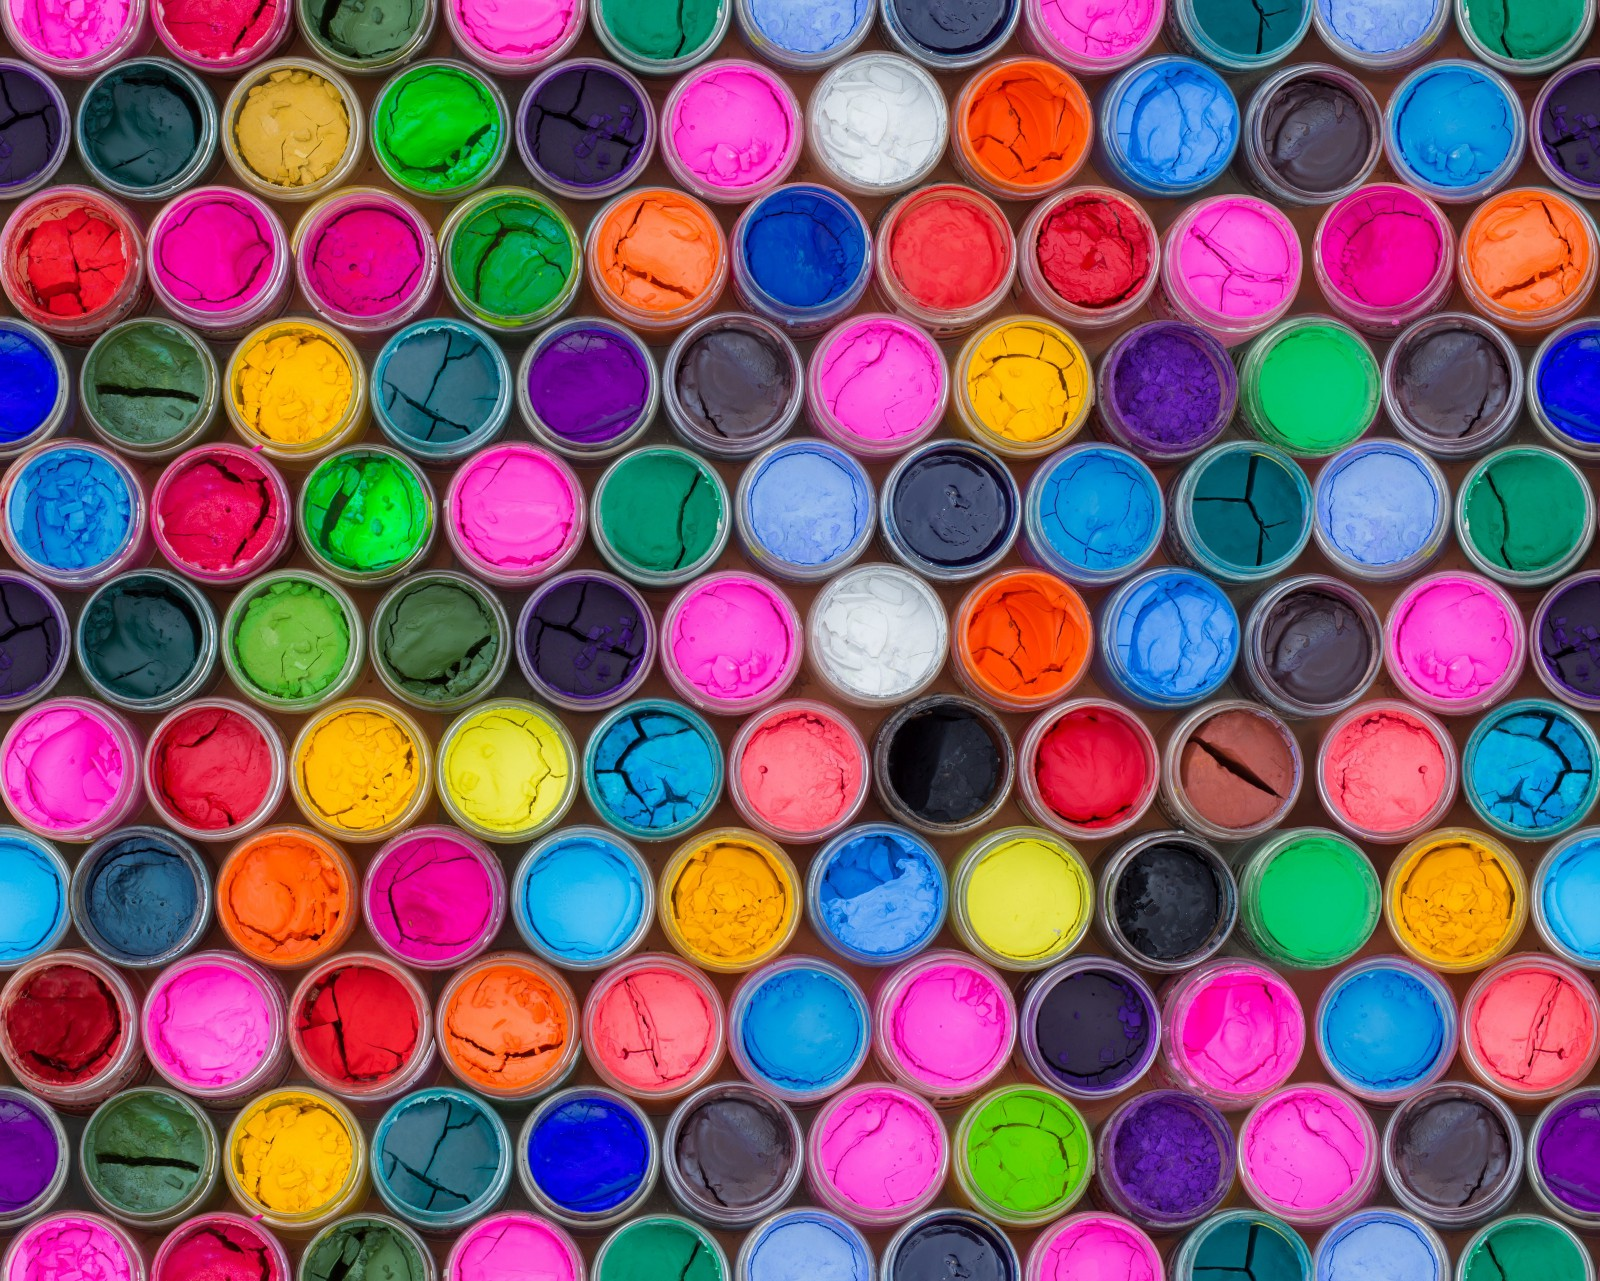 Parenting and Food Coloring As a Tool – Angel Johnson – Medium